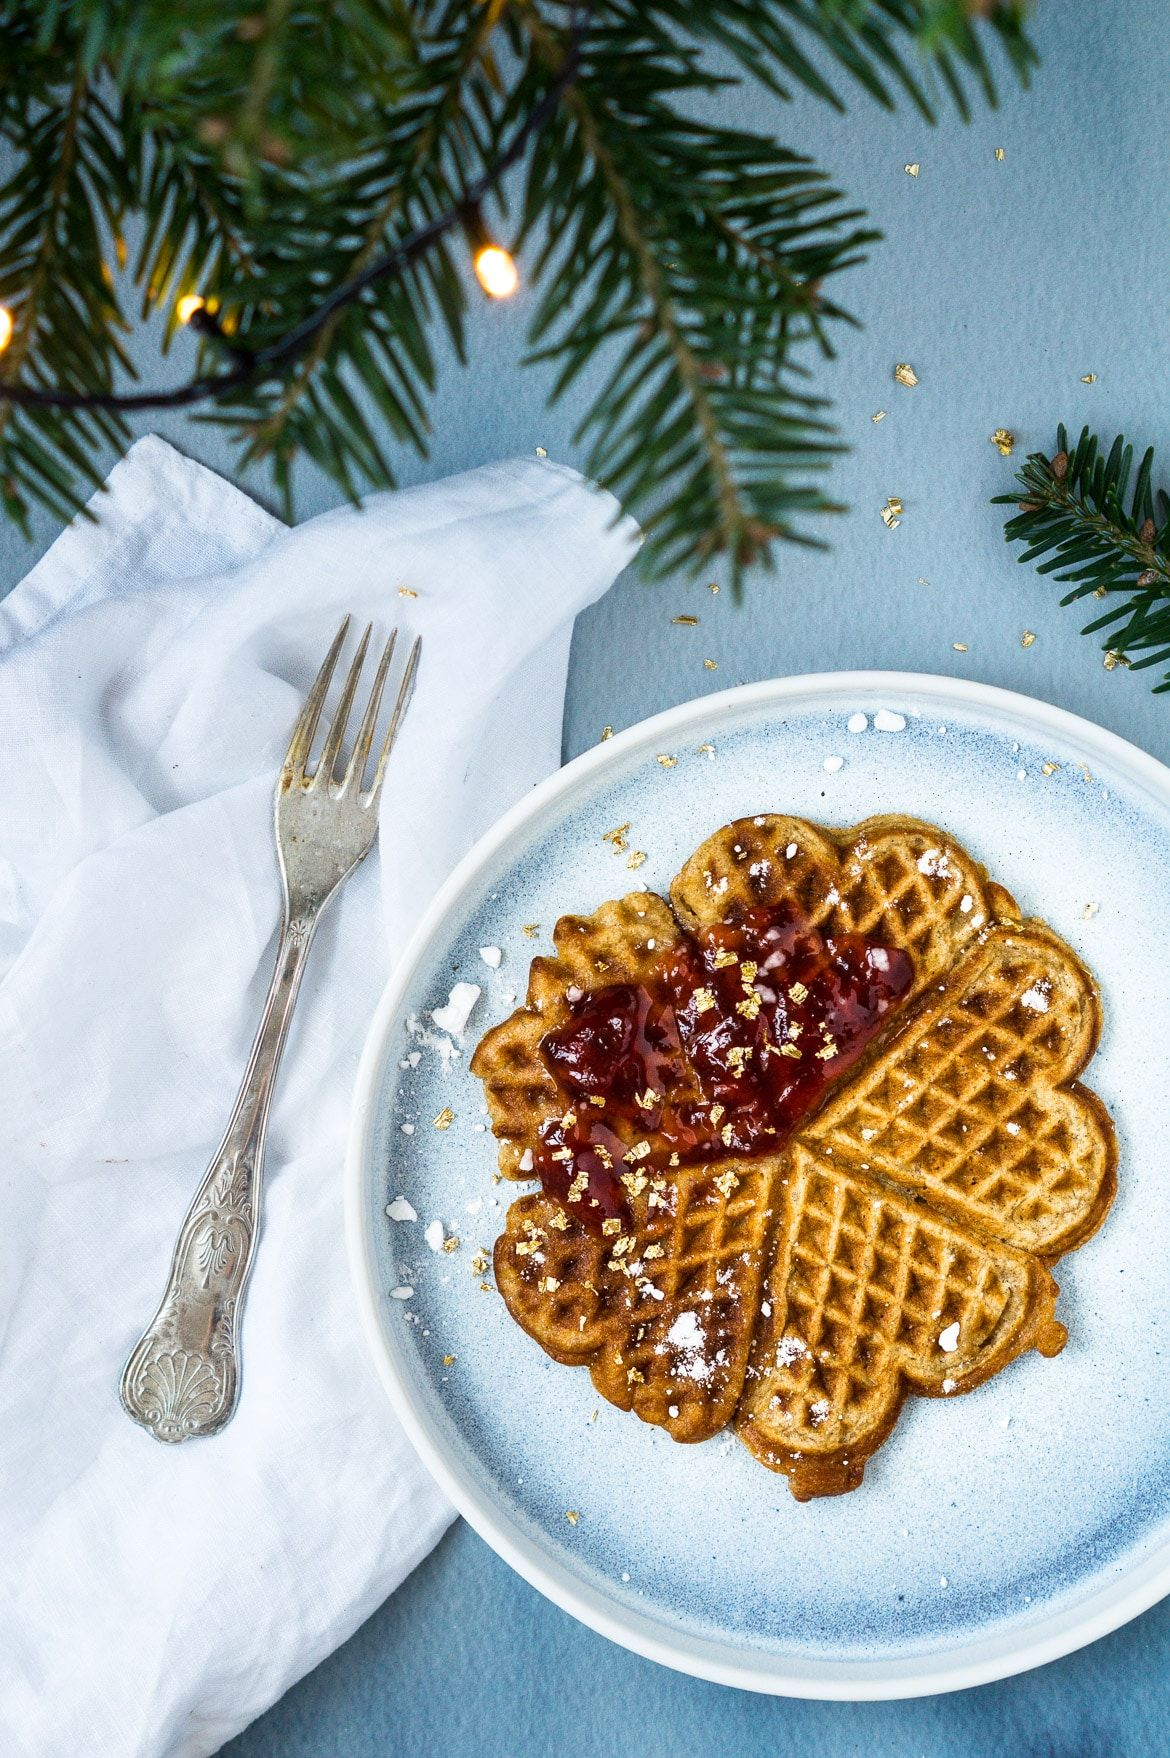 Photo of Crustacean waffles – rice porridge waffles. Lovely waffles made from a residual rice porridge and …